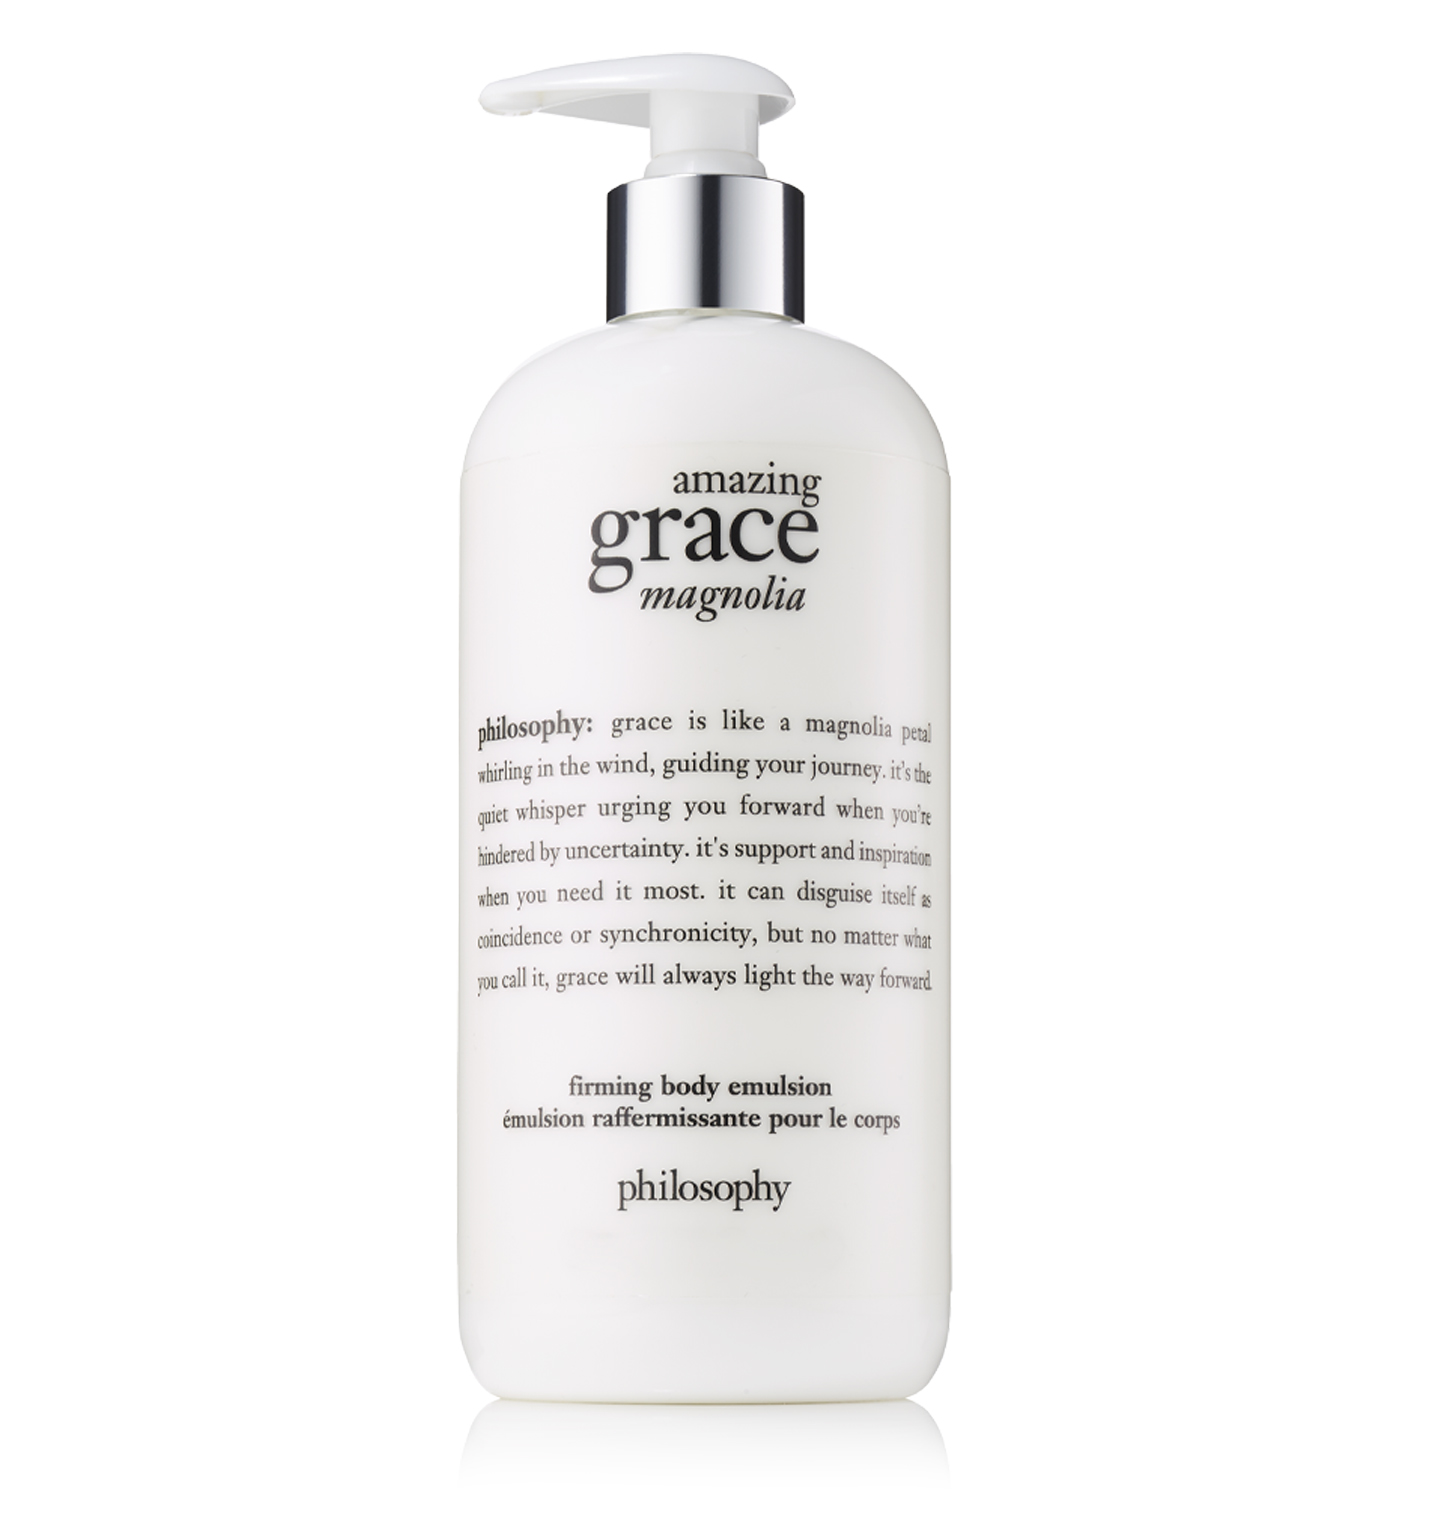 amazing grace magnolia firming body emulsion